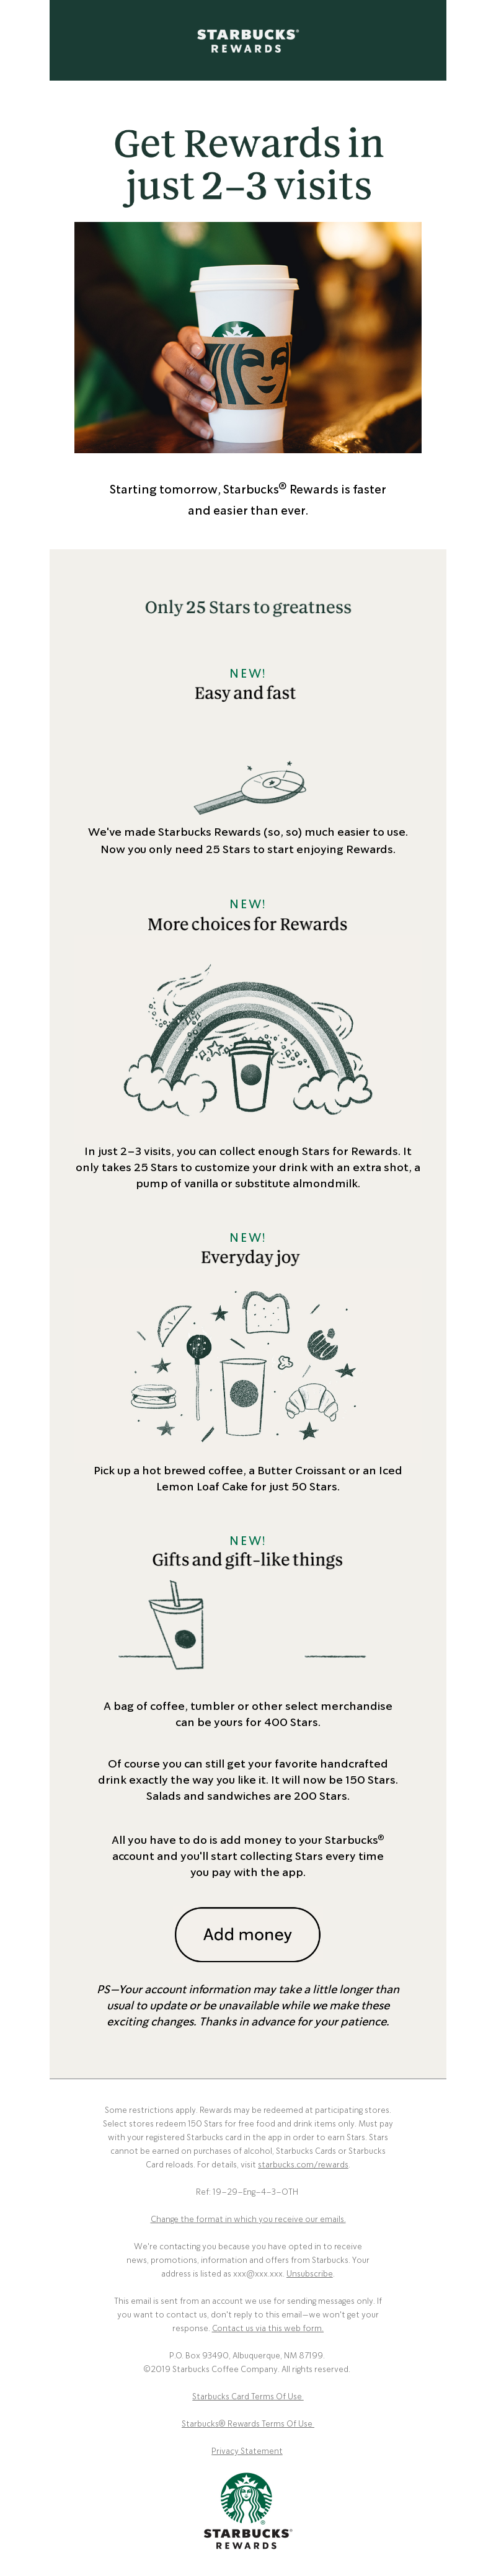 Email example promoting loyalty and customer reward program sent by Starbucks